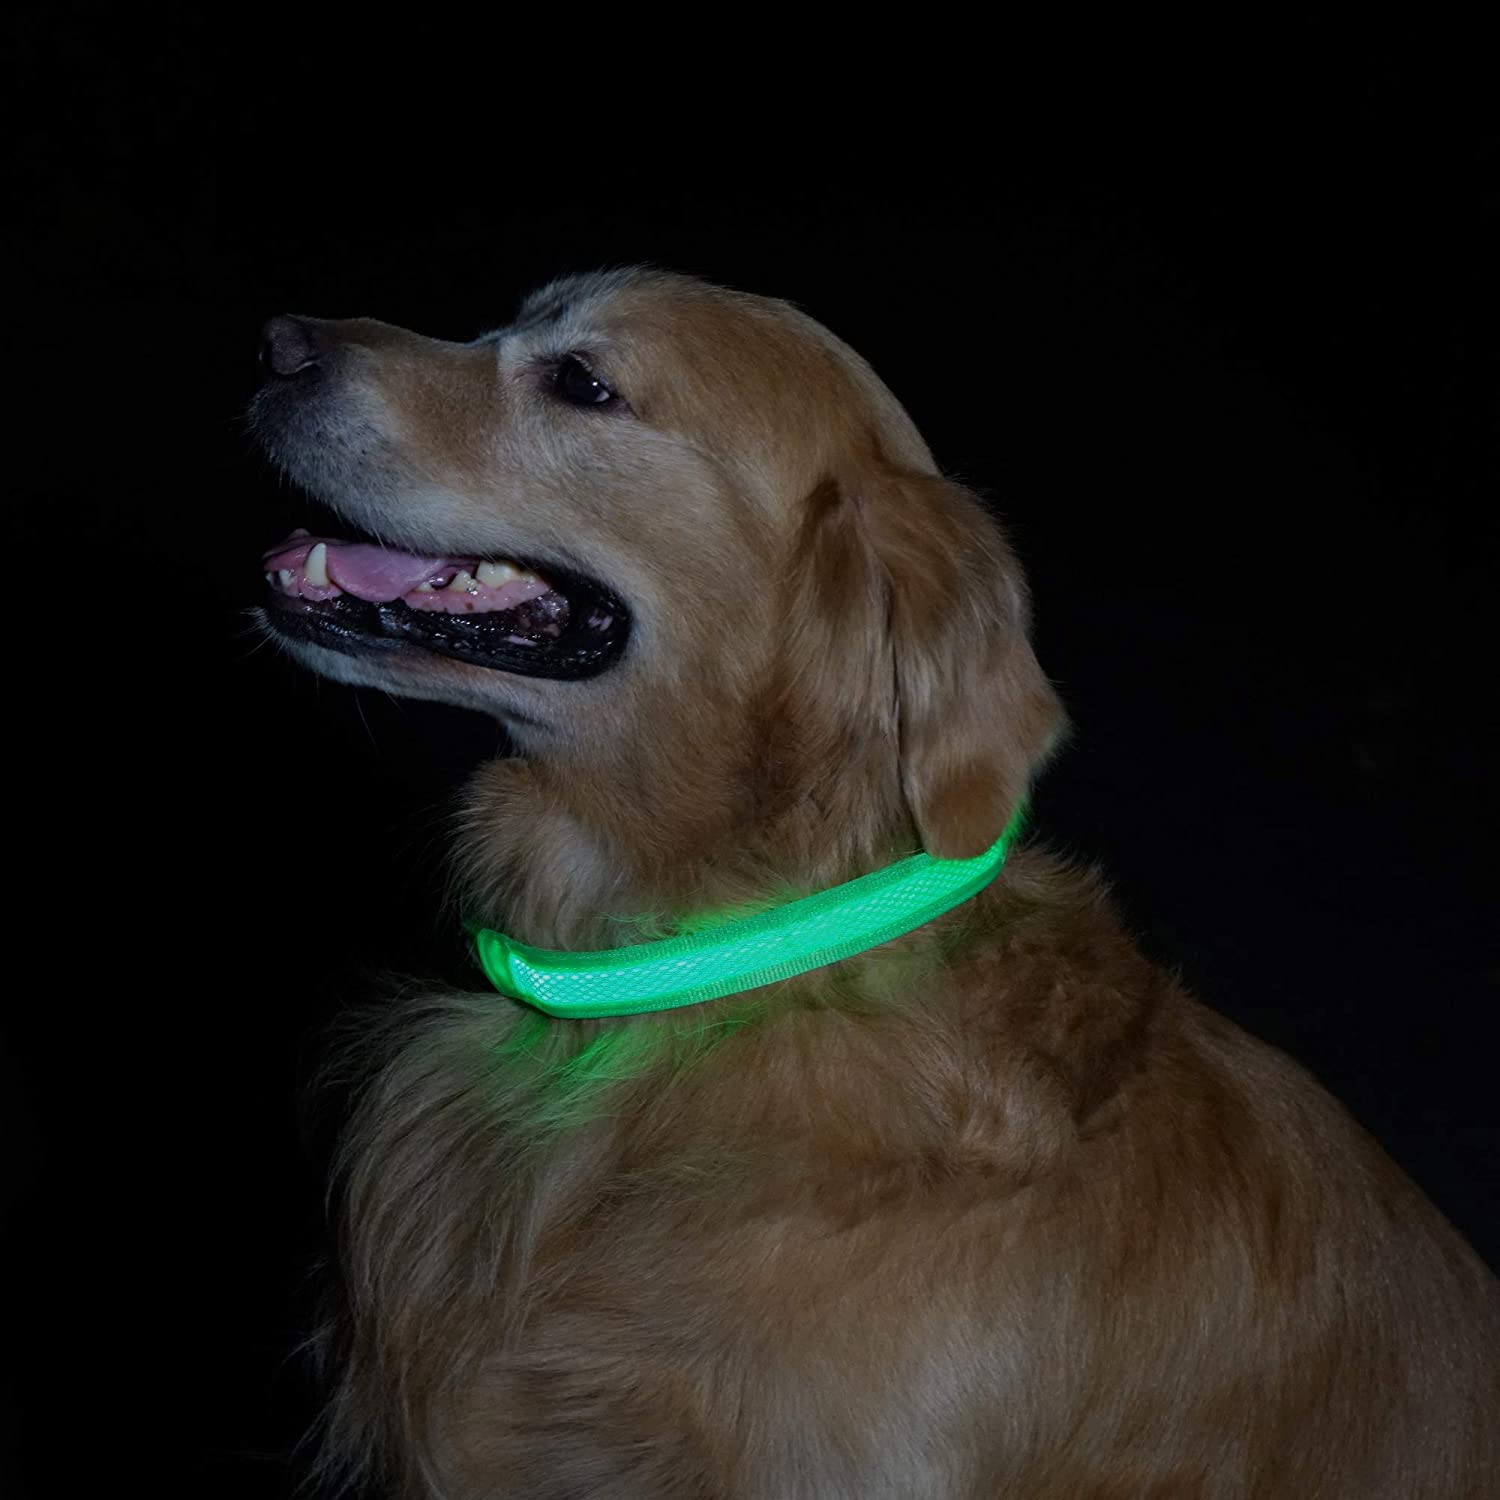 MATCHY2U Rechargeable Led Dog Collar - Soft and Adjustable Waterproof Light up Safety, Makes Your Dog Visible and Safe : Kitchen & Dining